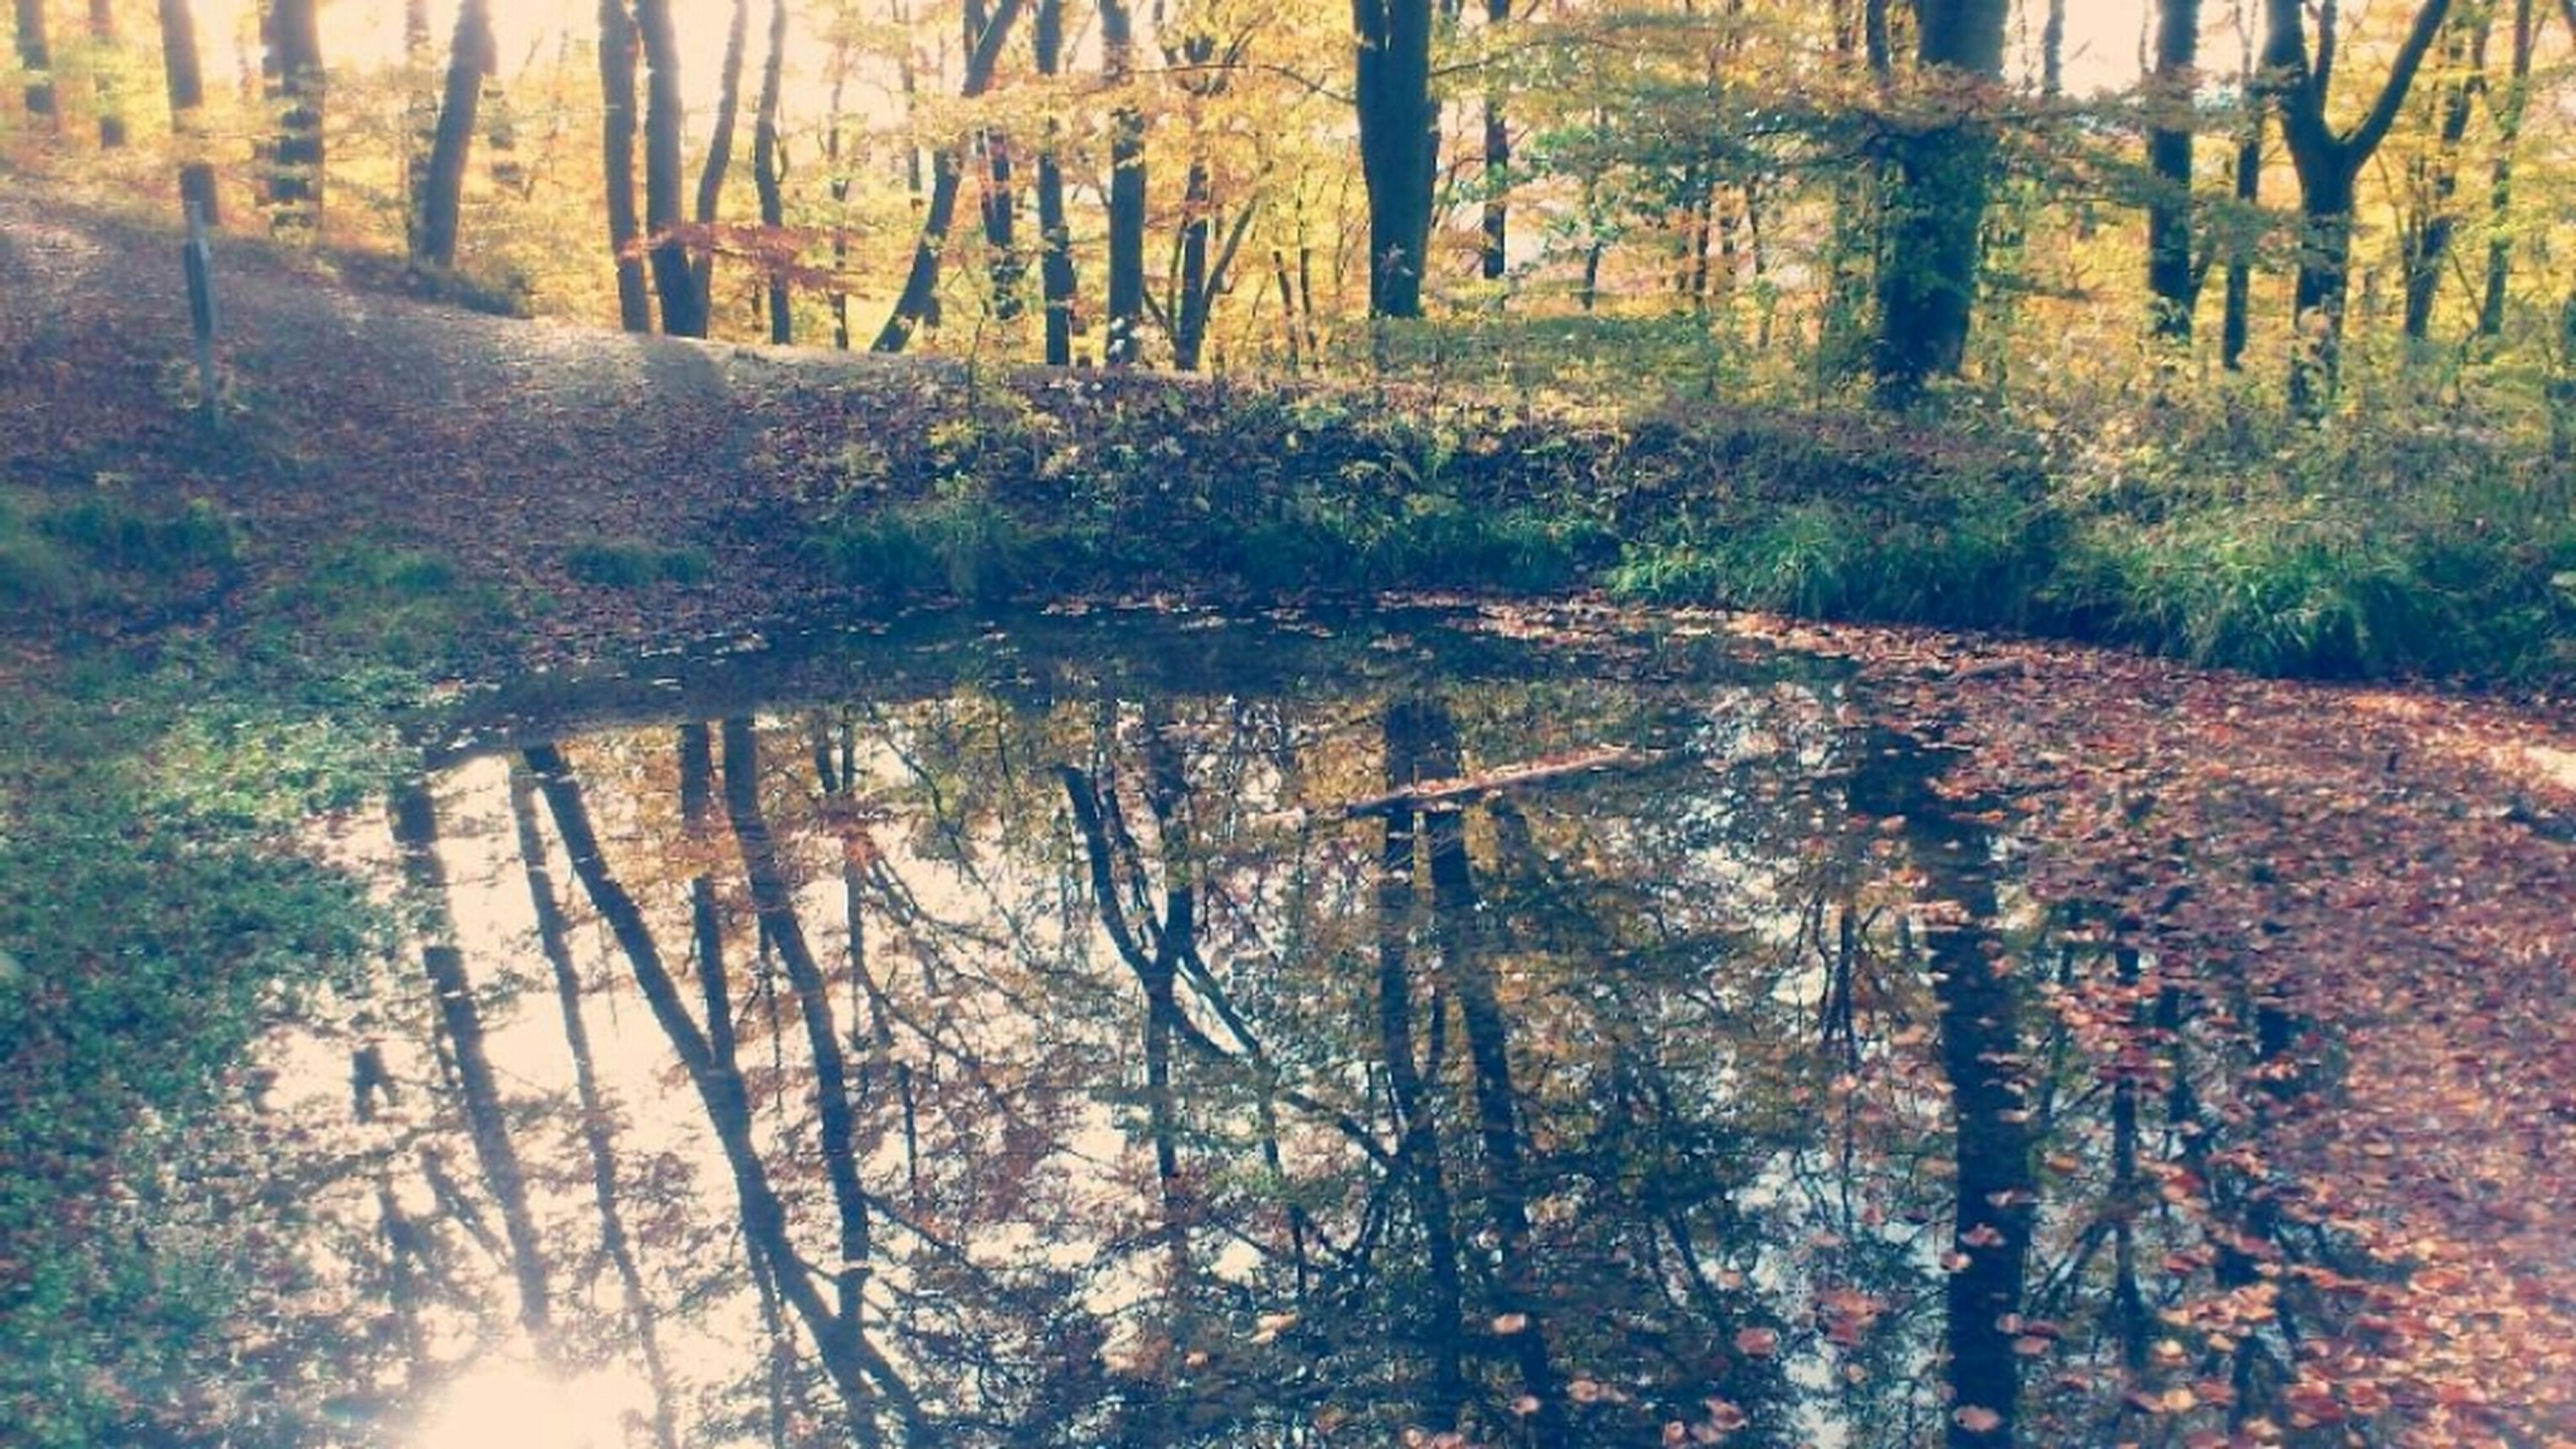 tree, tranquility, tree trunk, forest, tranquil scene, woodland, water, nature, scenics, beauty in nature, reflection, growth, lake, non-urban scene, branch, idyllic, river, sunlight, landscape, outdoors